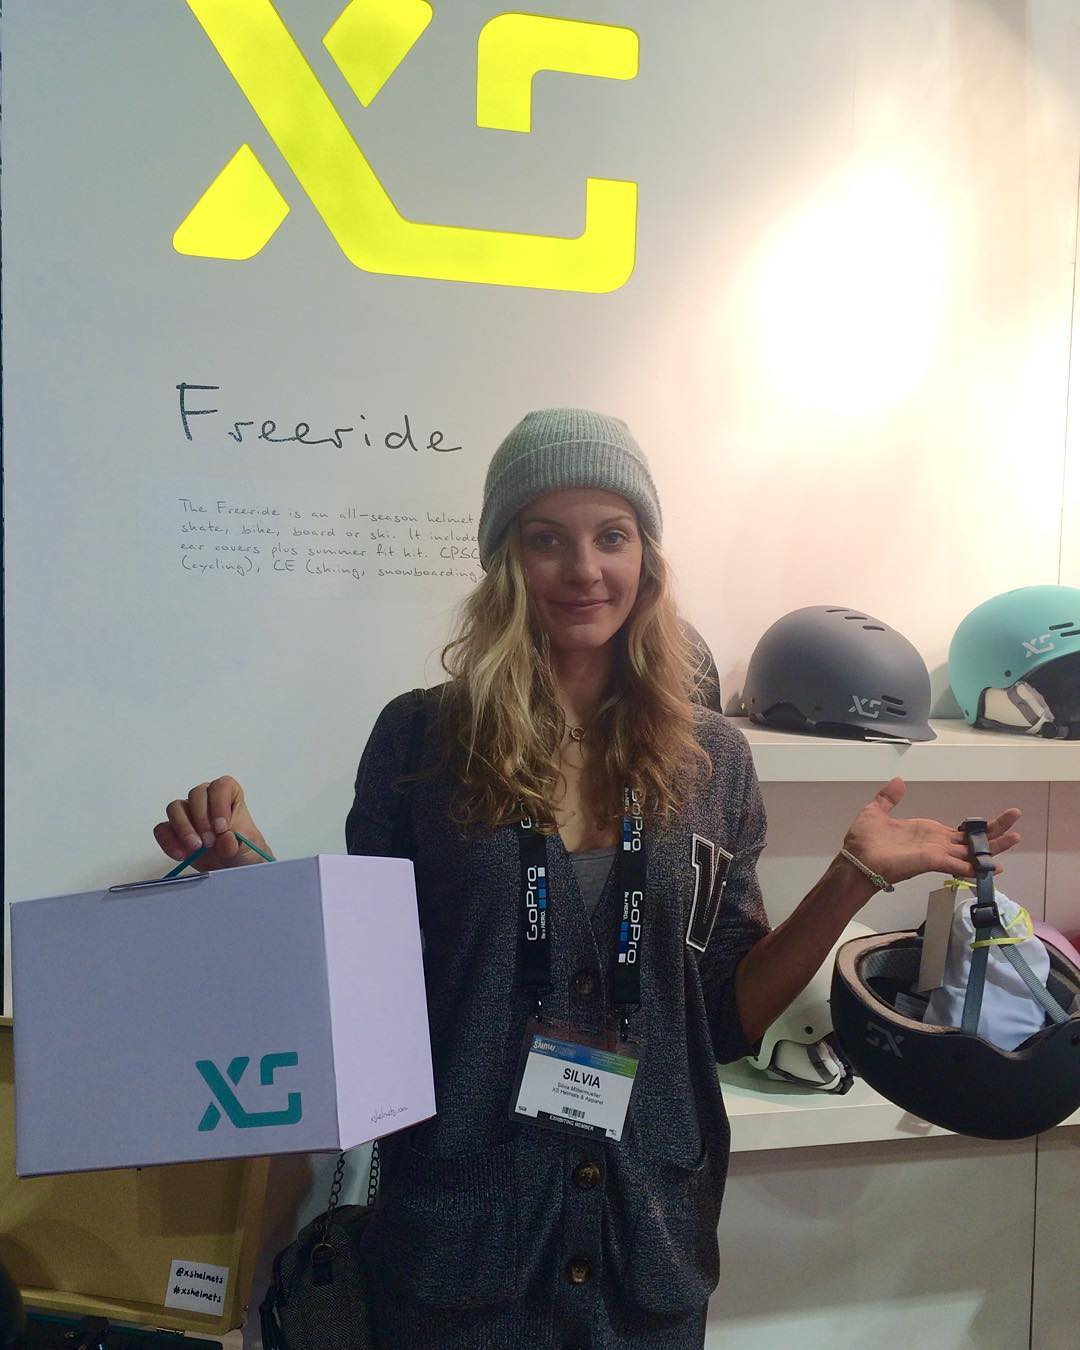 Had the pleasure to see @silviamittermul today and set her up with some goods! Thanks Silvia for making time to visit us! #xshelmets #xssocks #sia16